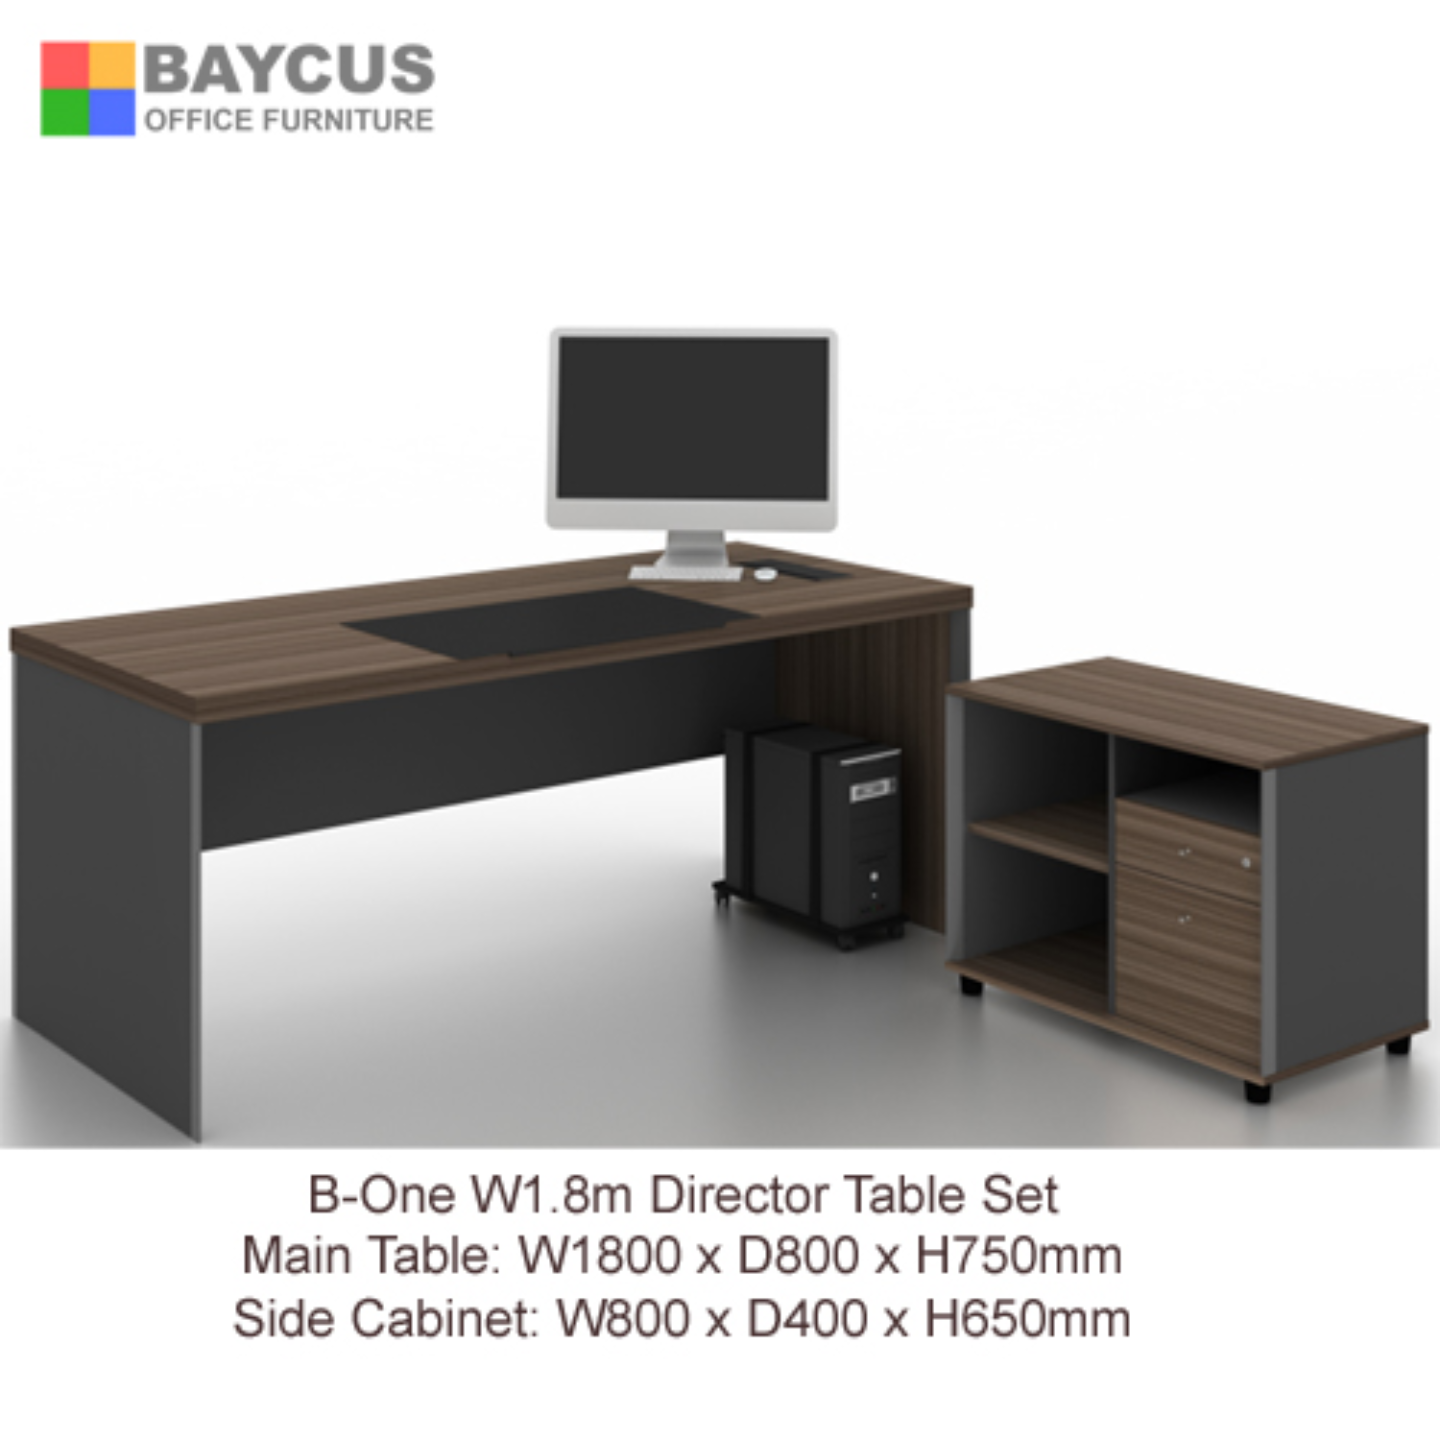 B-One 1.8m Director Table Set Wooden Leg - Dark Brown